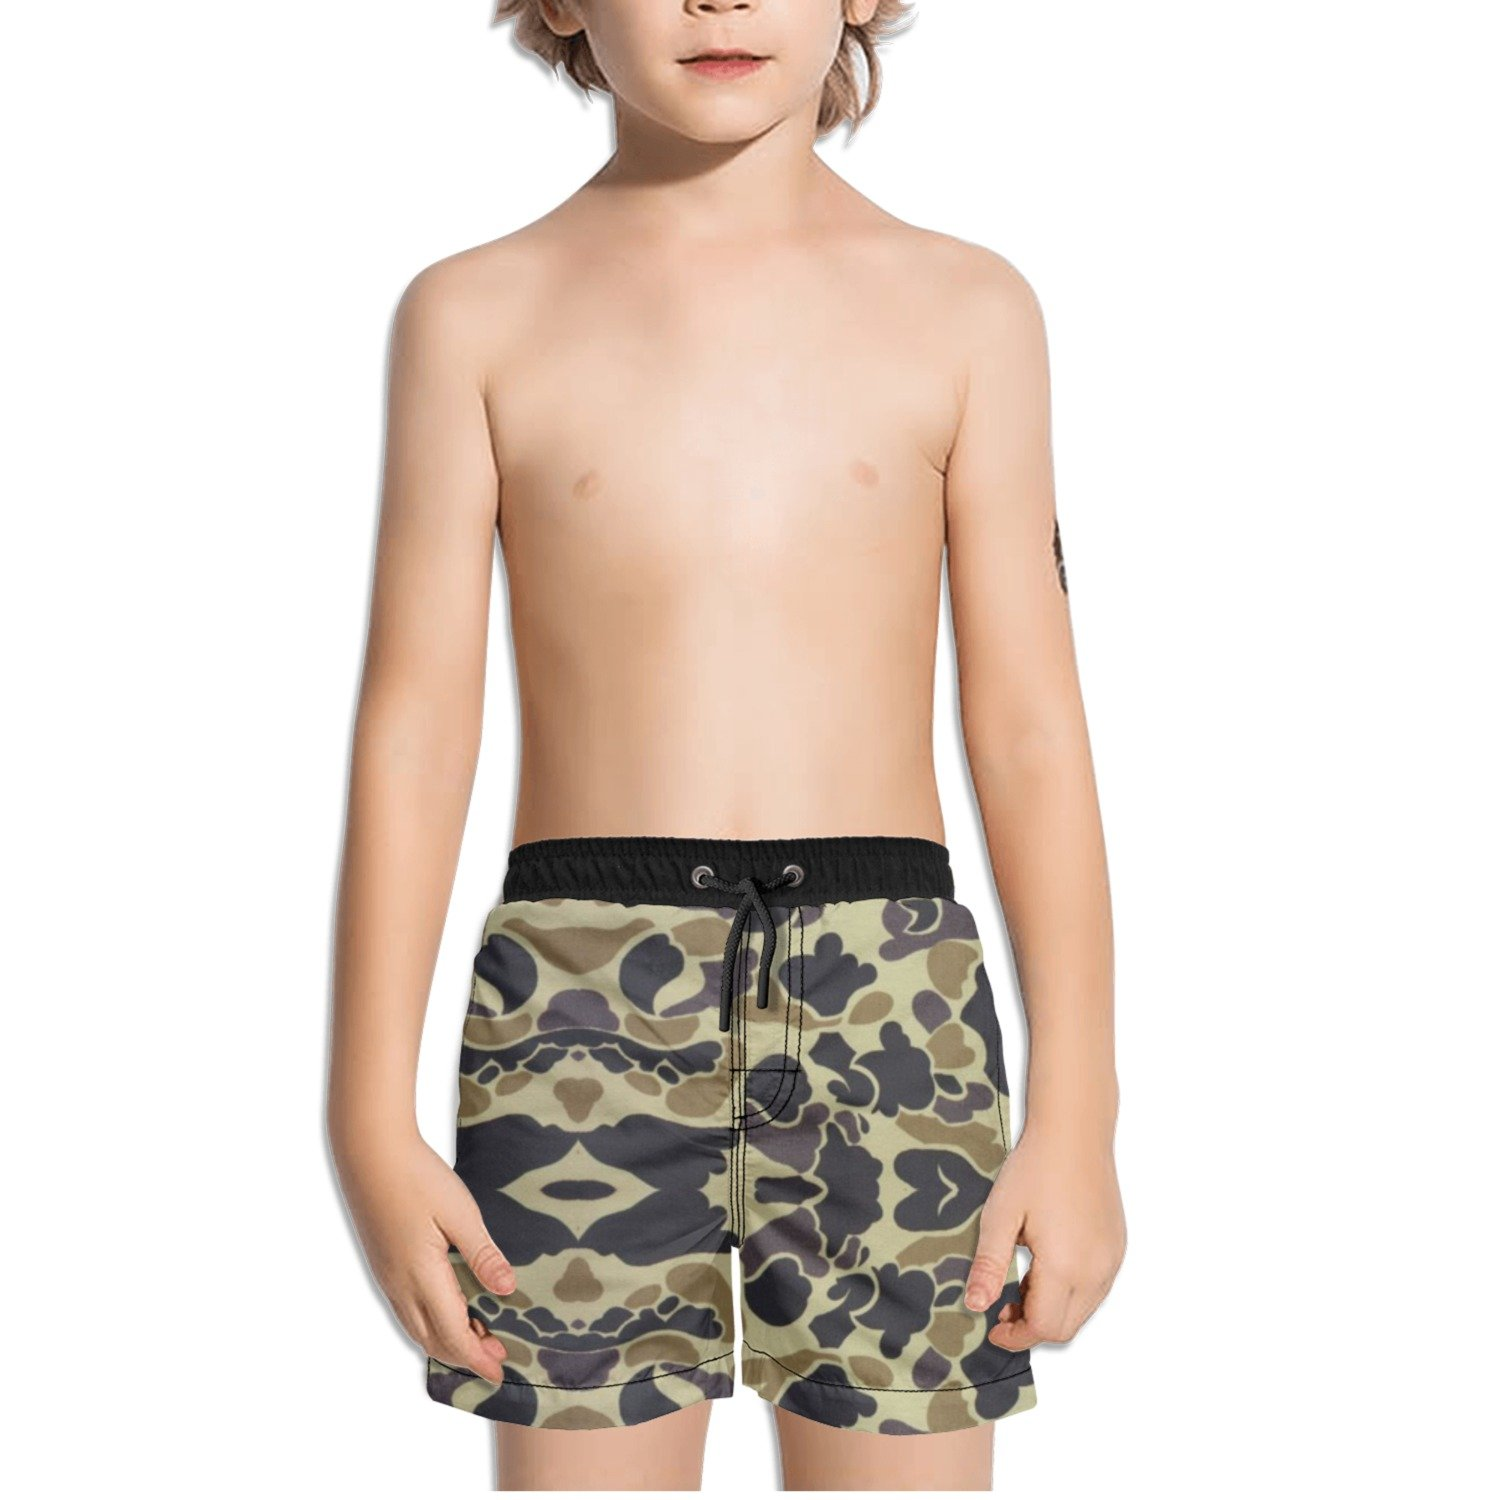 Ouxioaz Boys Swim Trunk Camo Artwork Beach Board Shorts